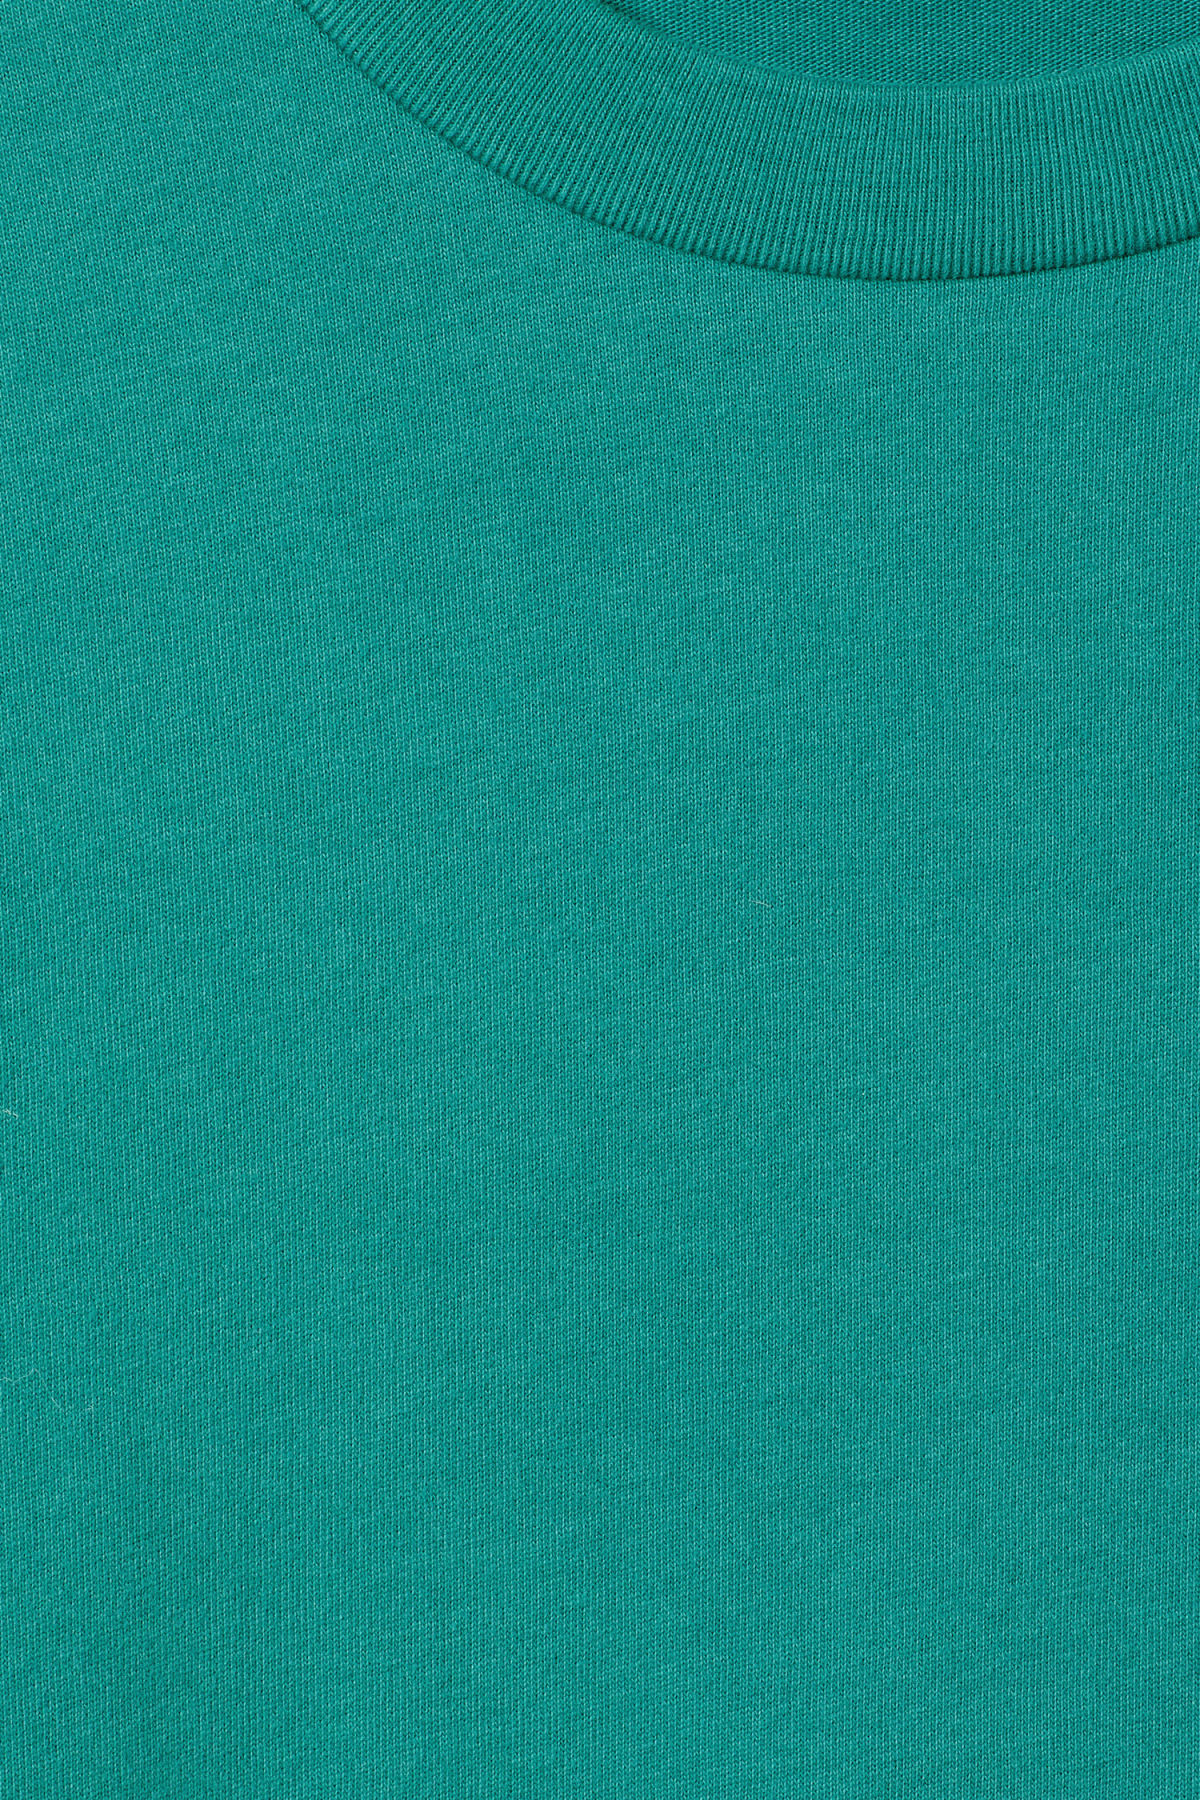 Detailed image of Weekday great t-shirt in turquoise